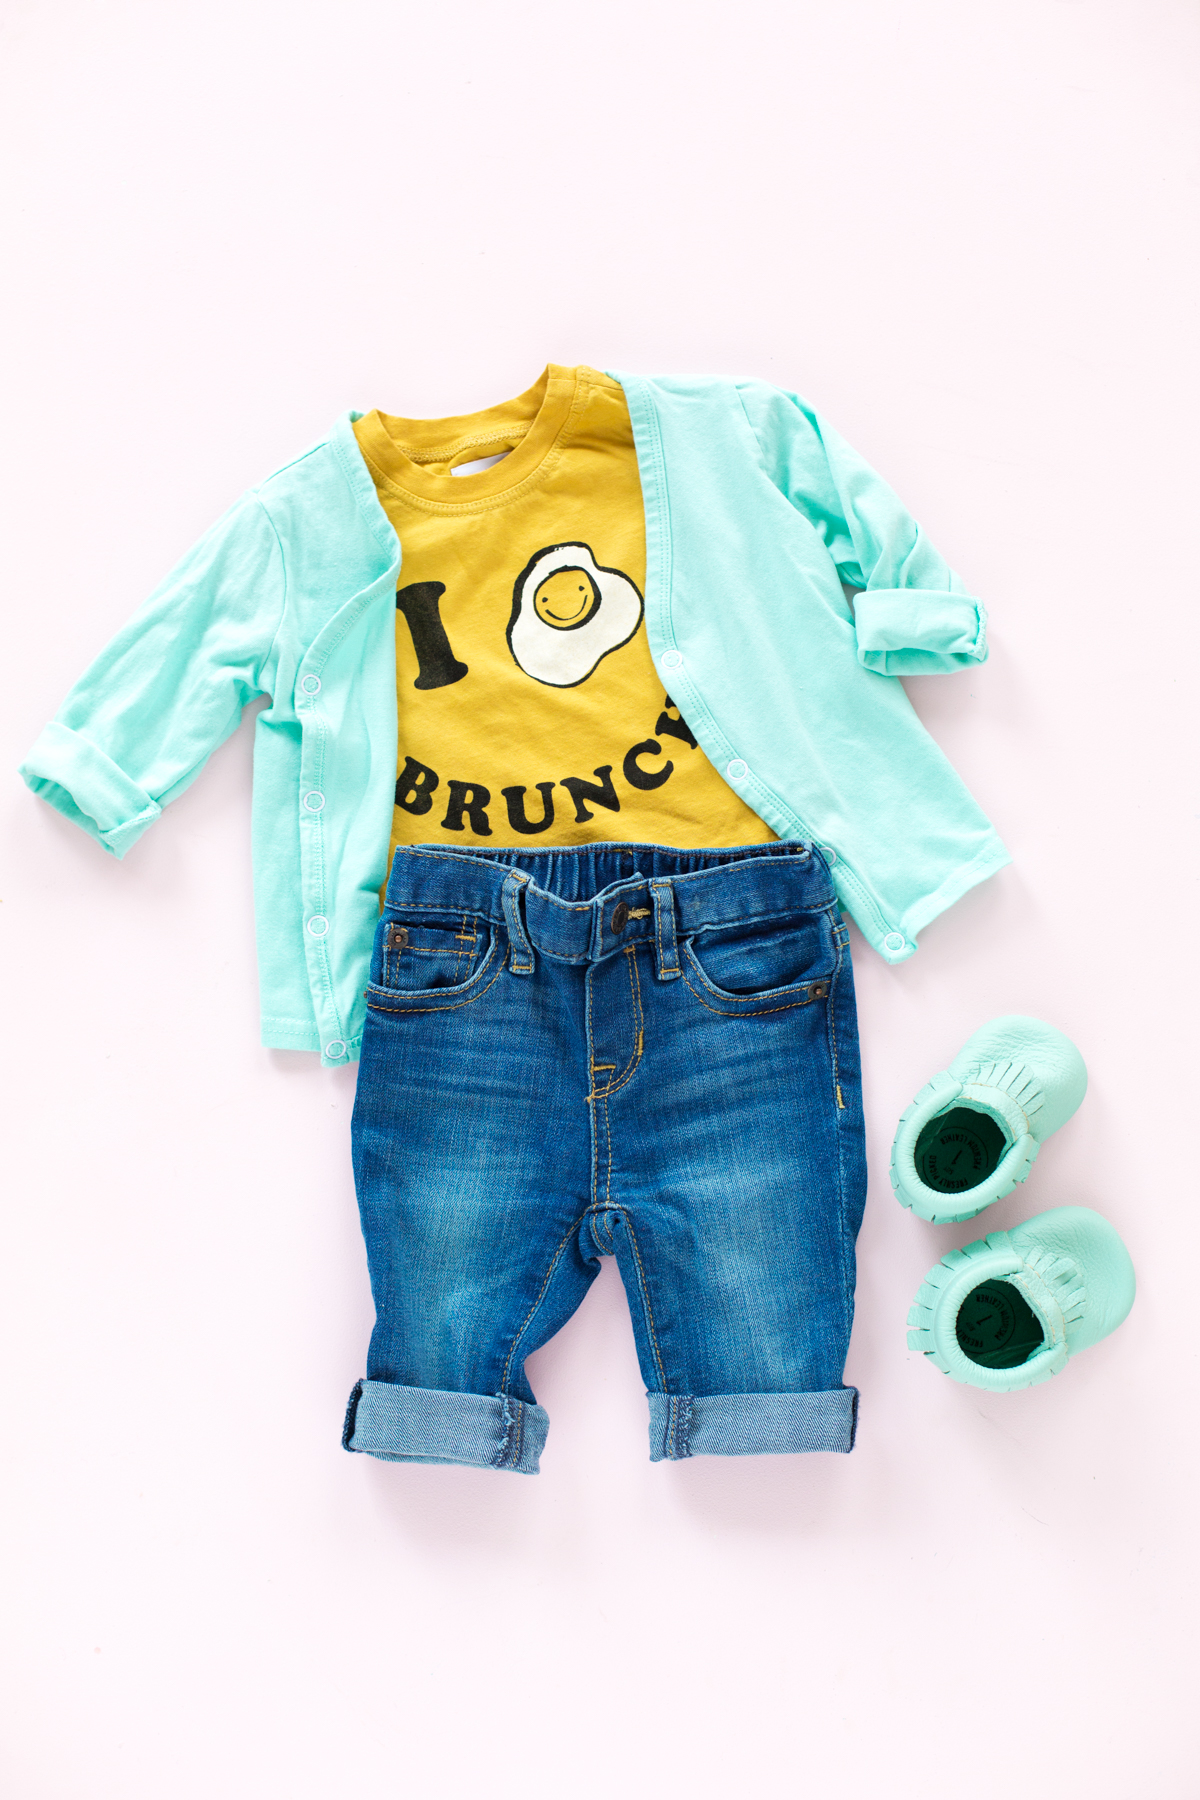 My Favorite Sources for Colorful Baby Clothes Studio DIY